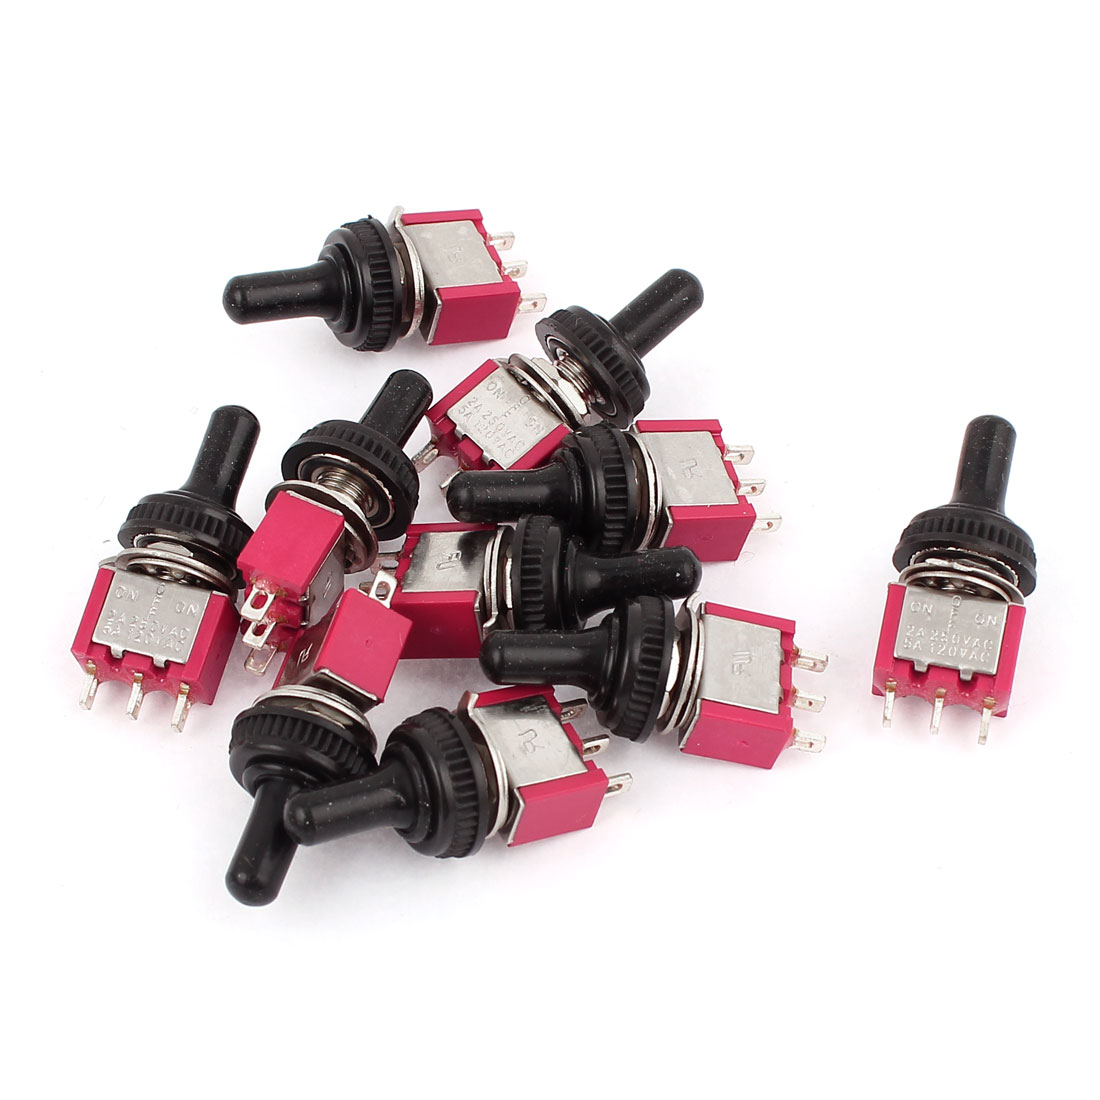 10Pcs AC 120V 5A / 250V 2A 3 Pin SPDT On/Off/On 3 Position Waterproof Mini Toggle Switch